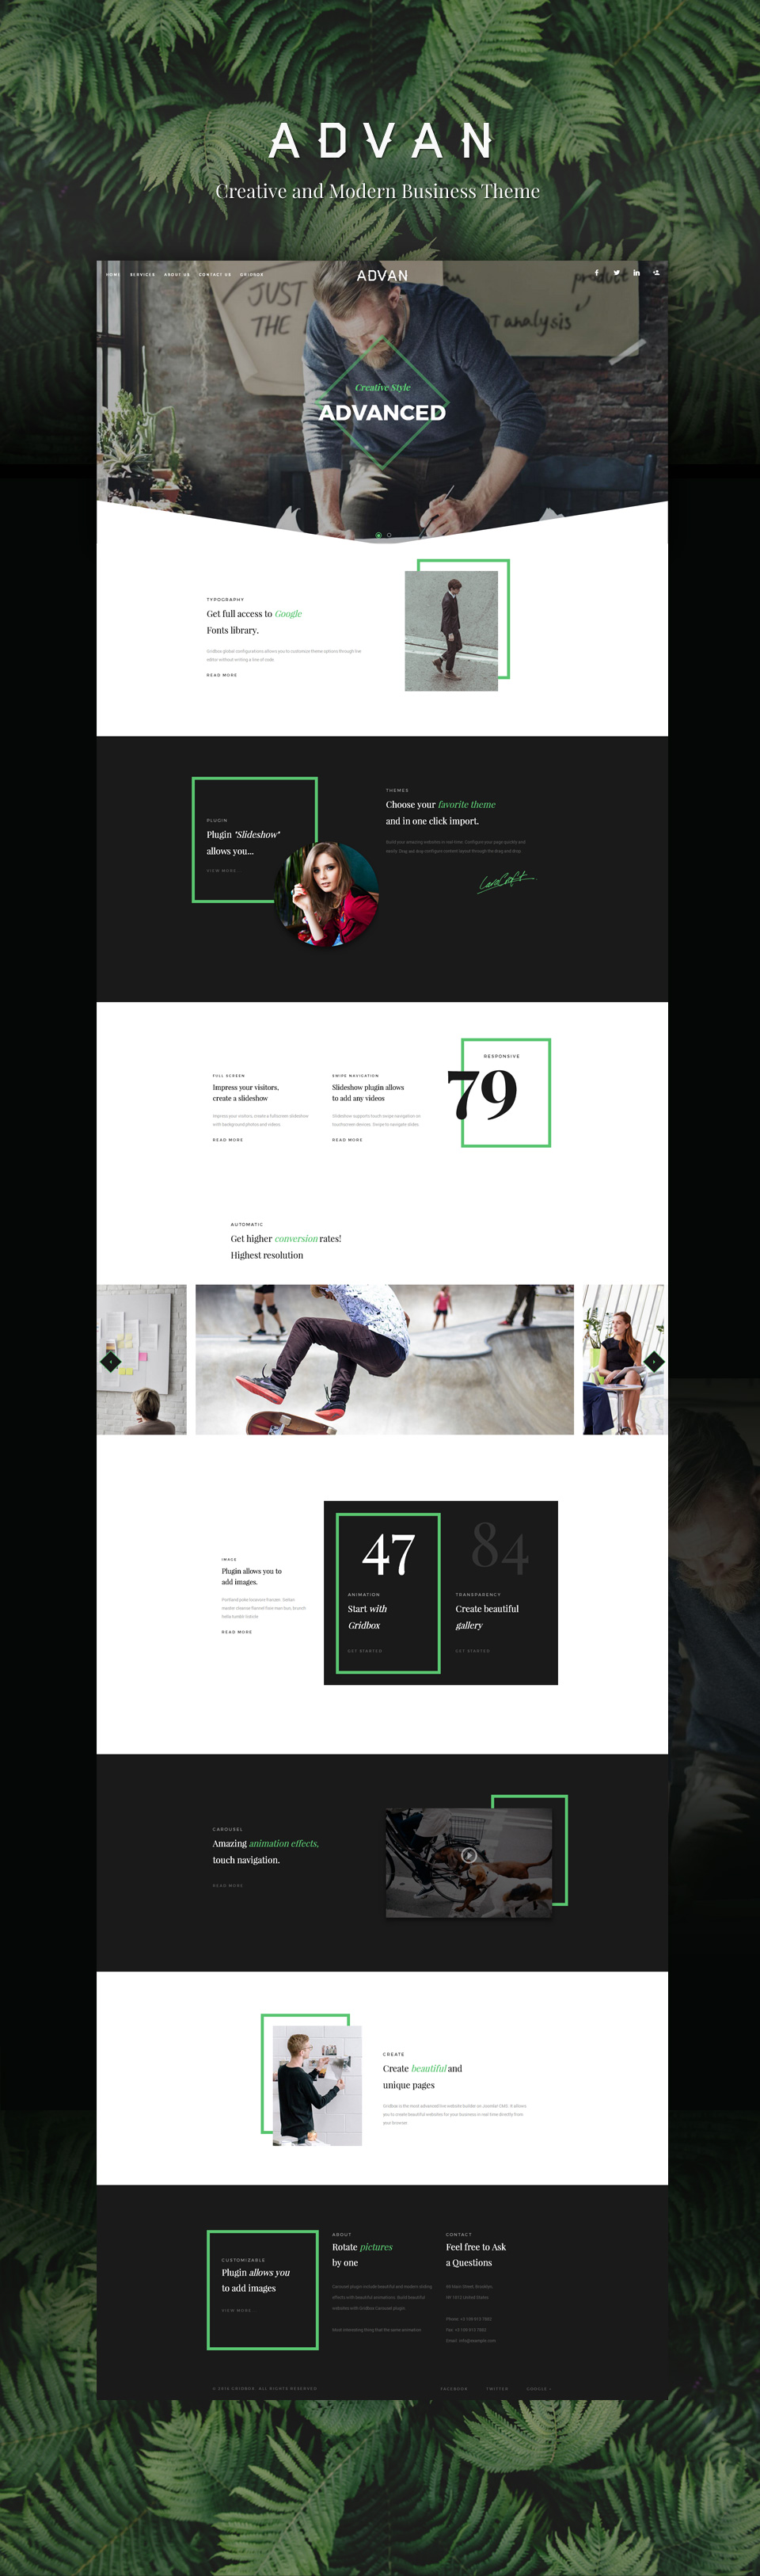 Demo - One Page Landing Page Theme HandMade